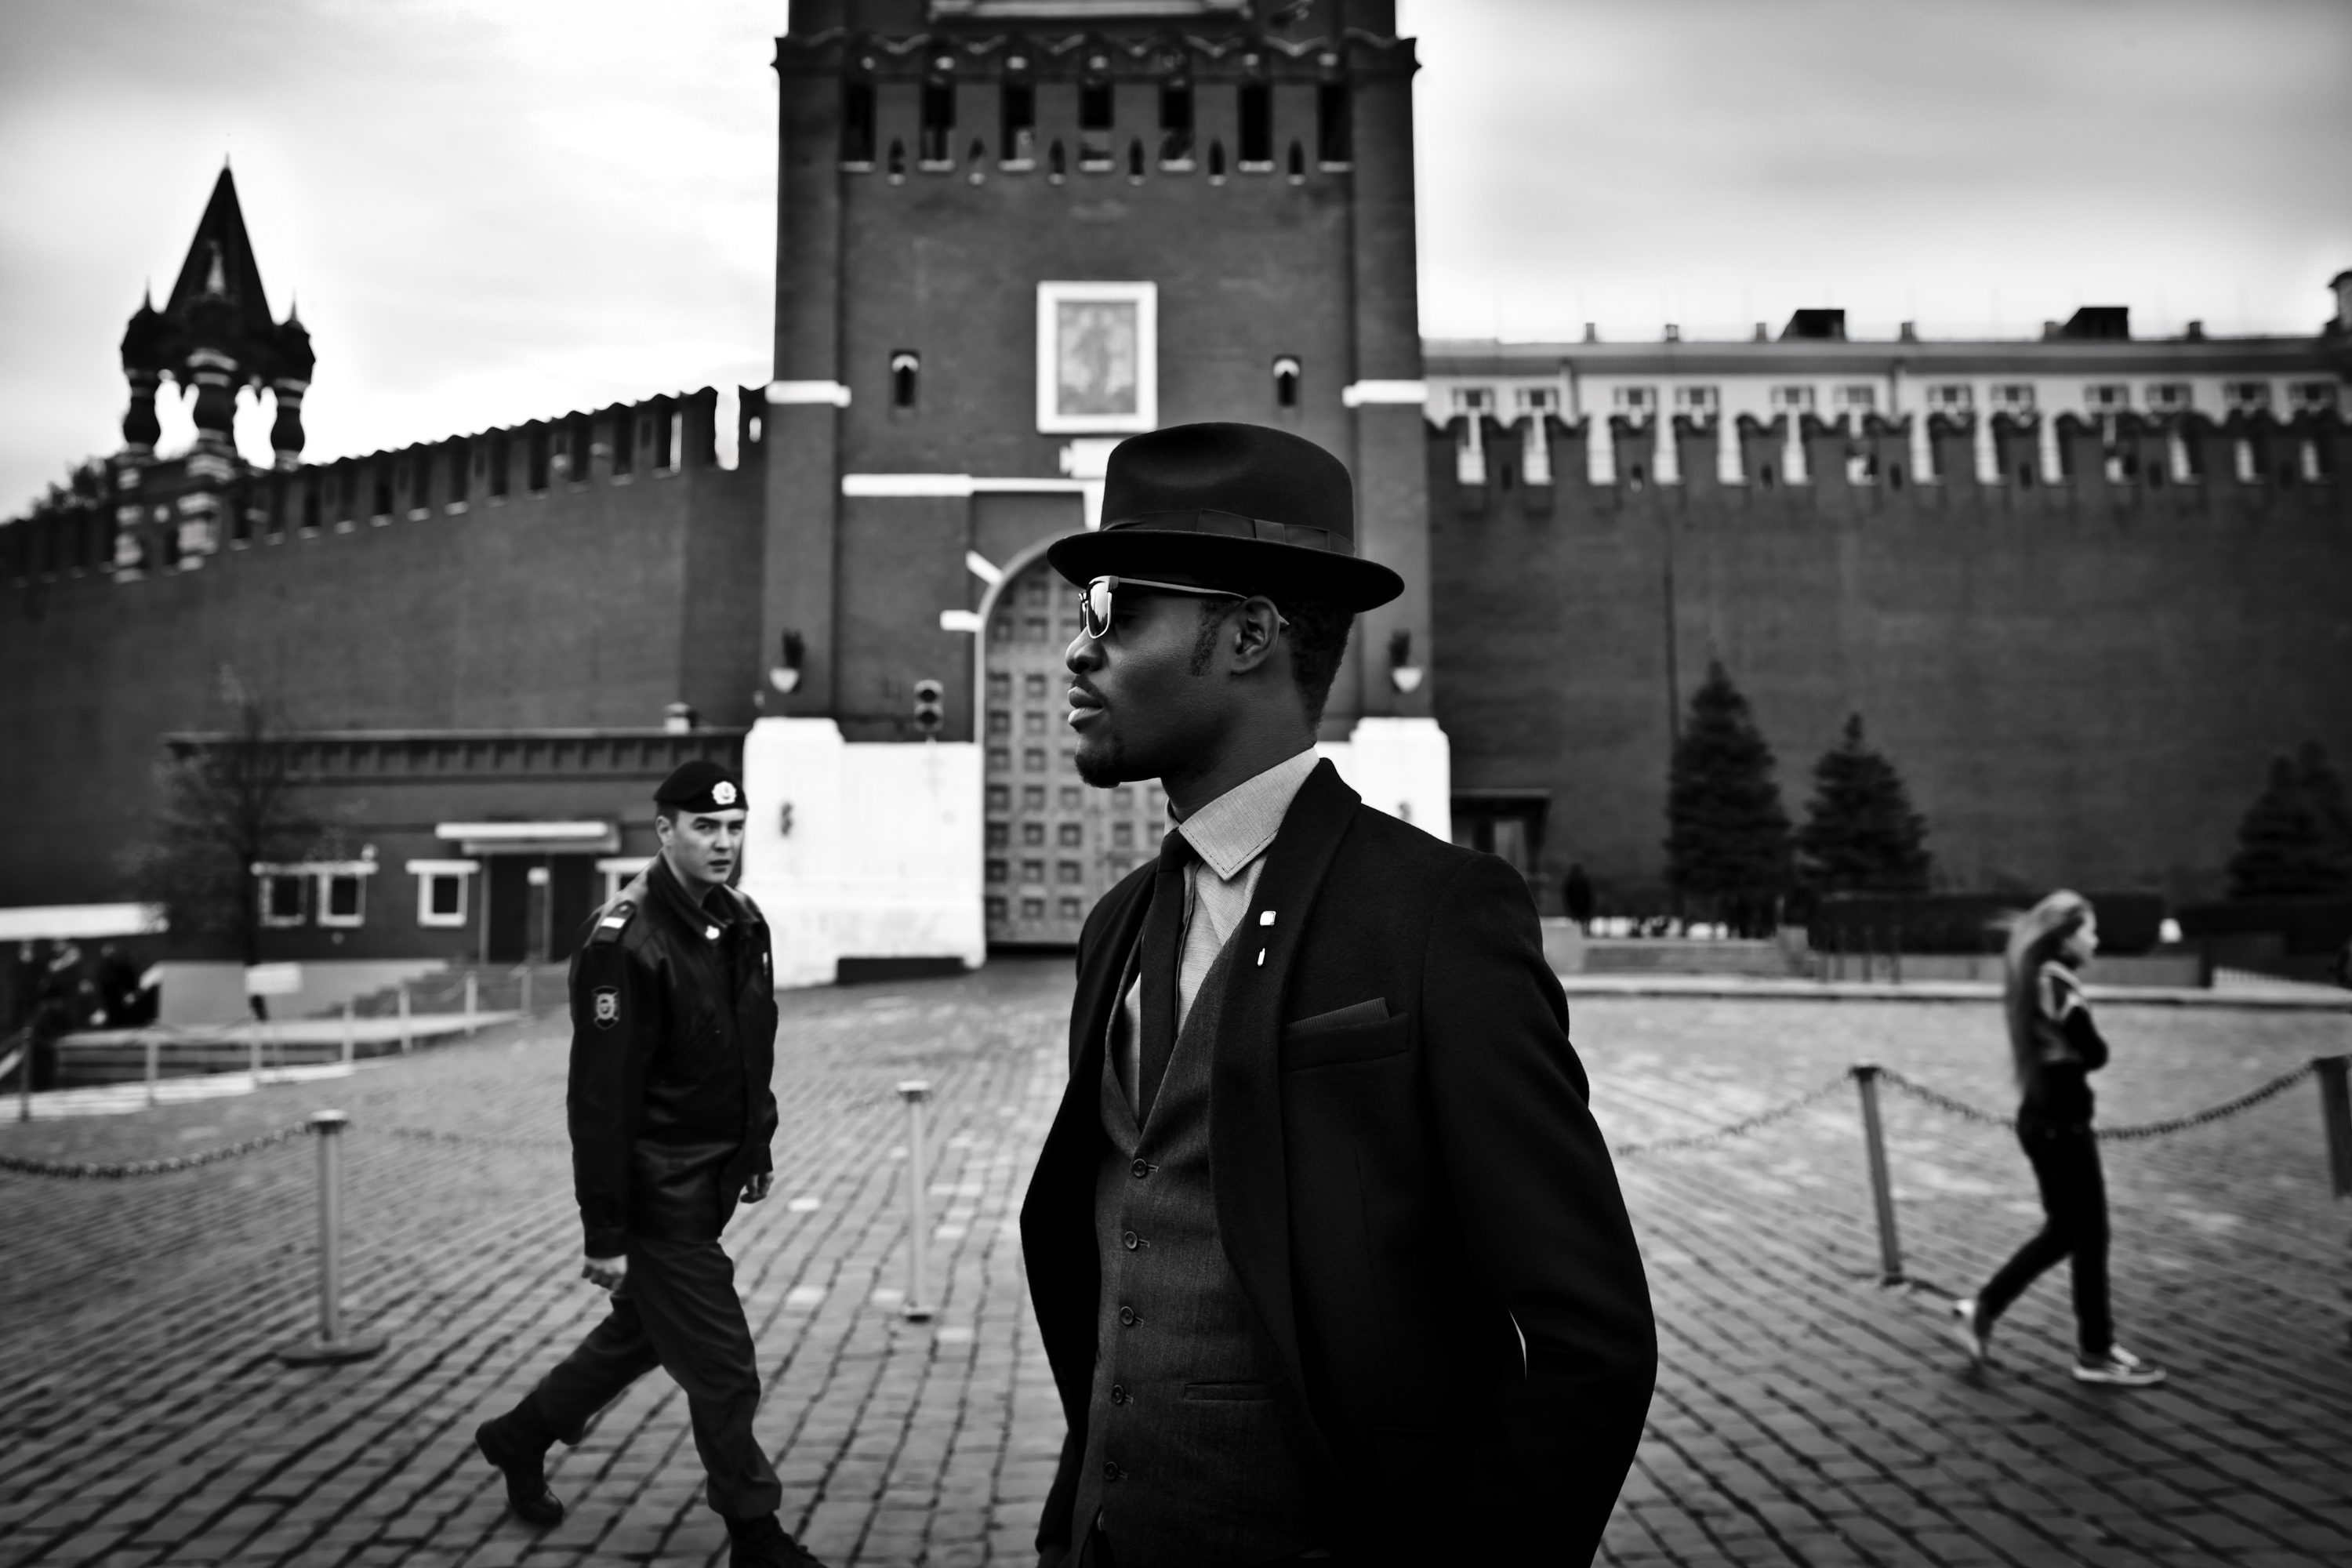 Photography Arteh Odjidja, Red Square Moscow, Russia, 2012, from the series Stranger in Moscow